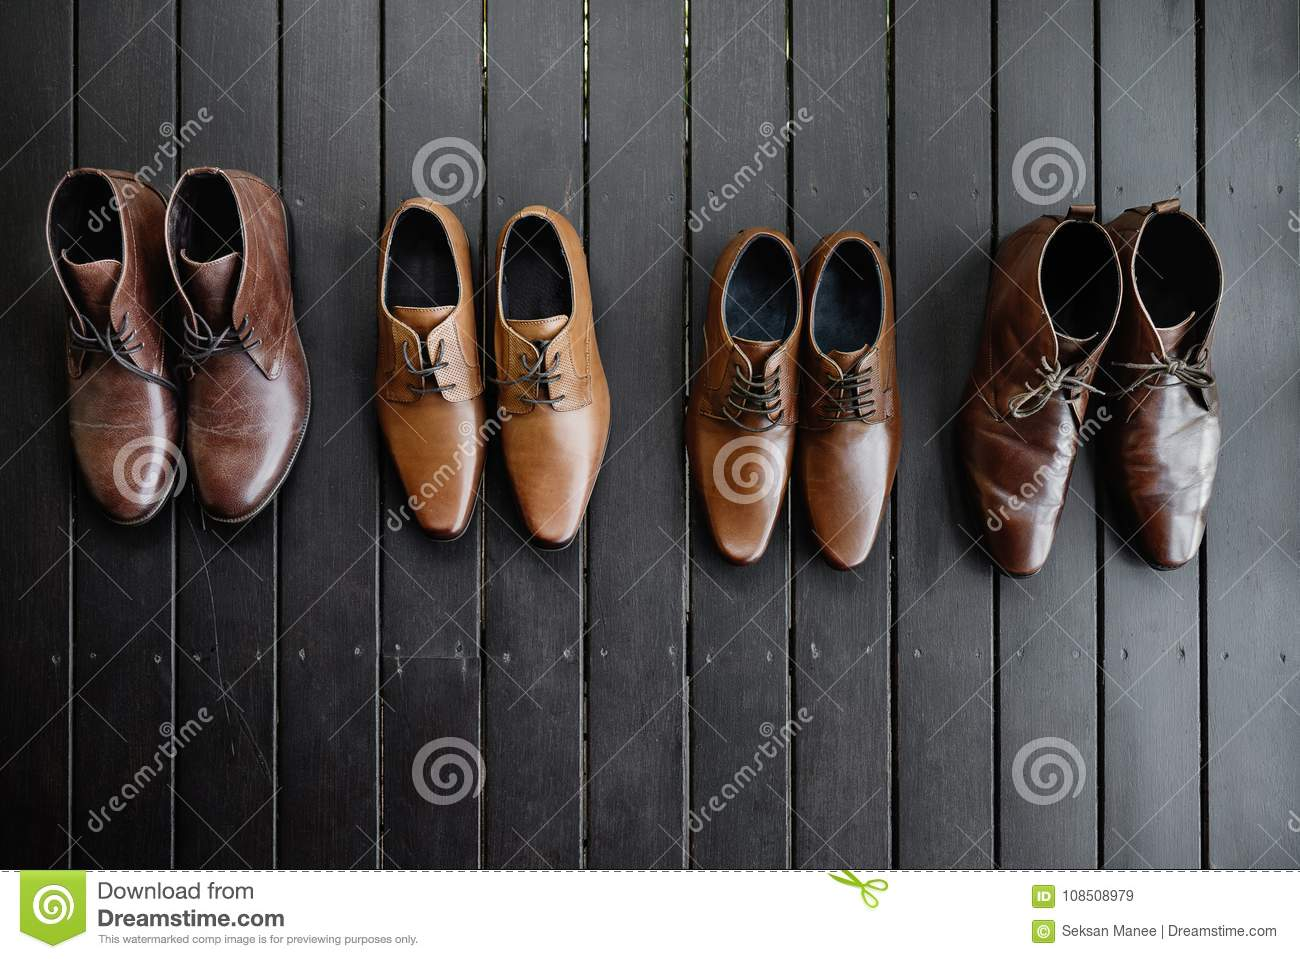 4 pairs of men's brown shoes on the black wooden floor